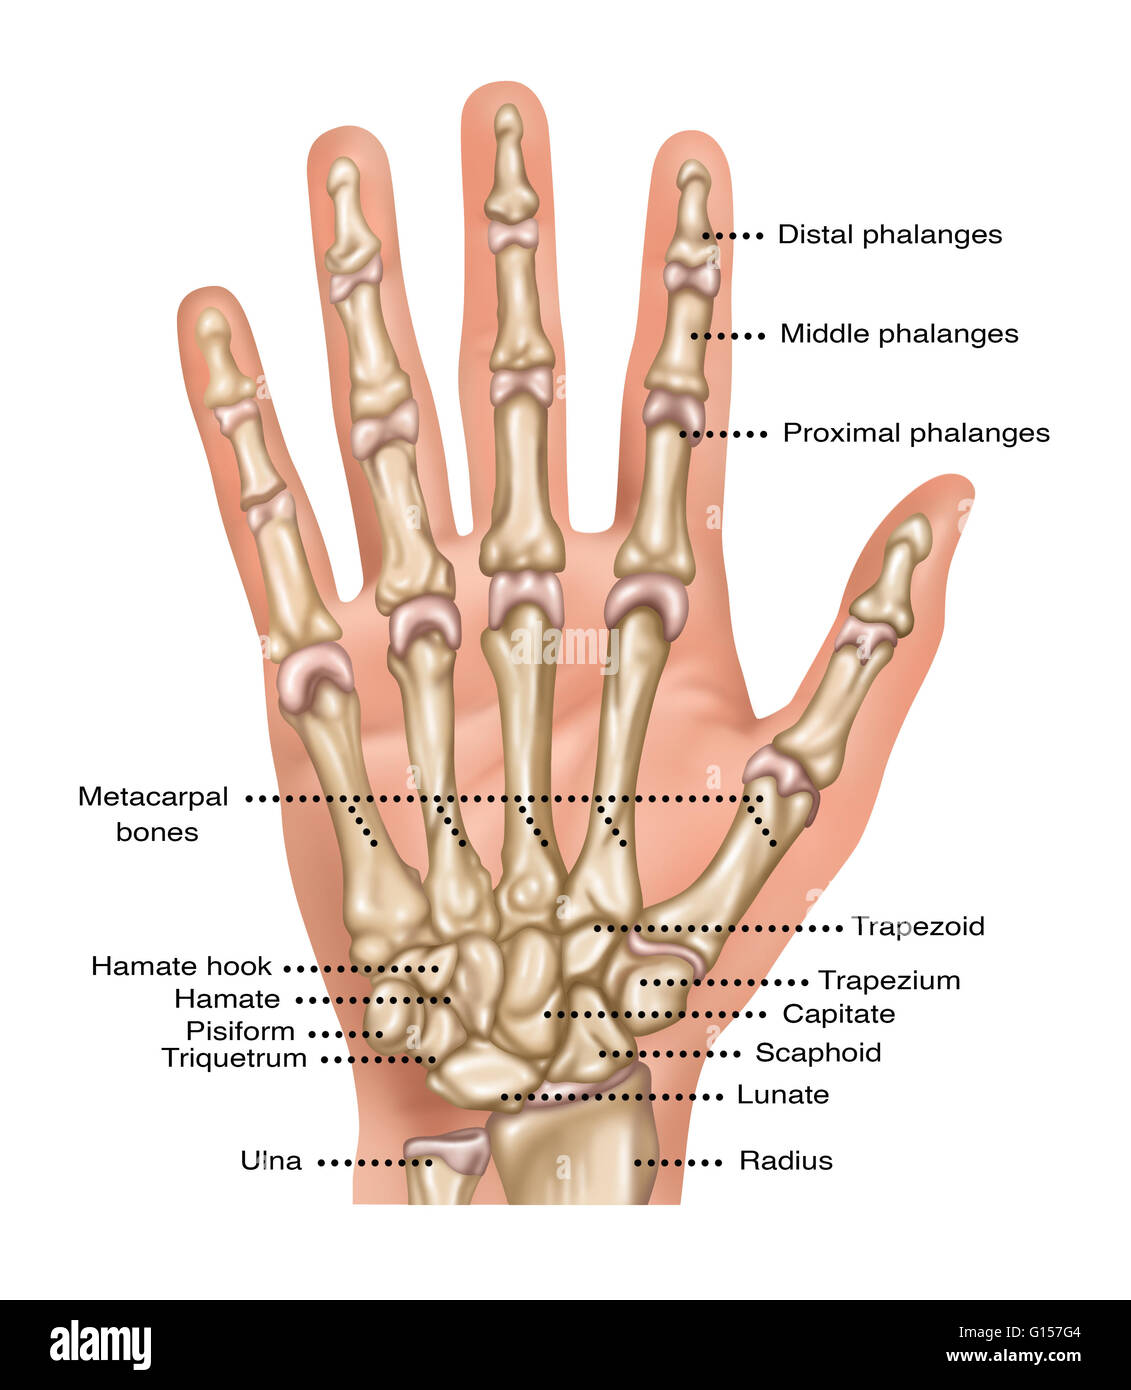 Illustration Showing The Bones Of The Hand And Wrist Making Up The